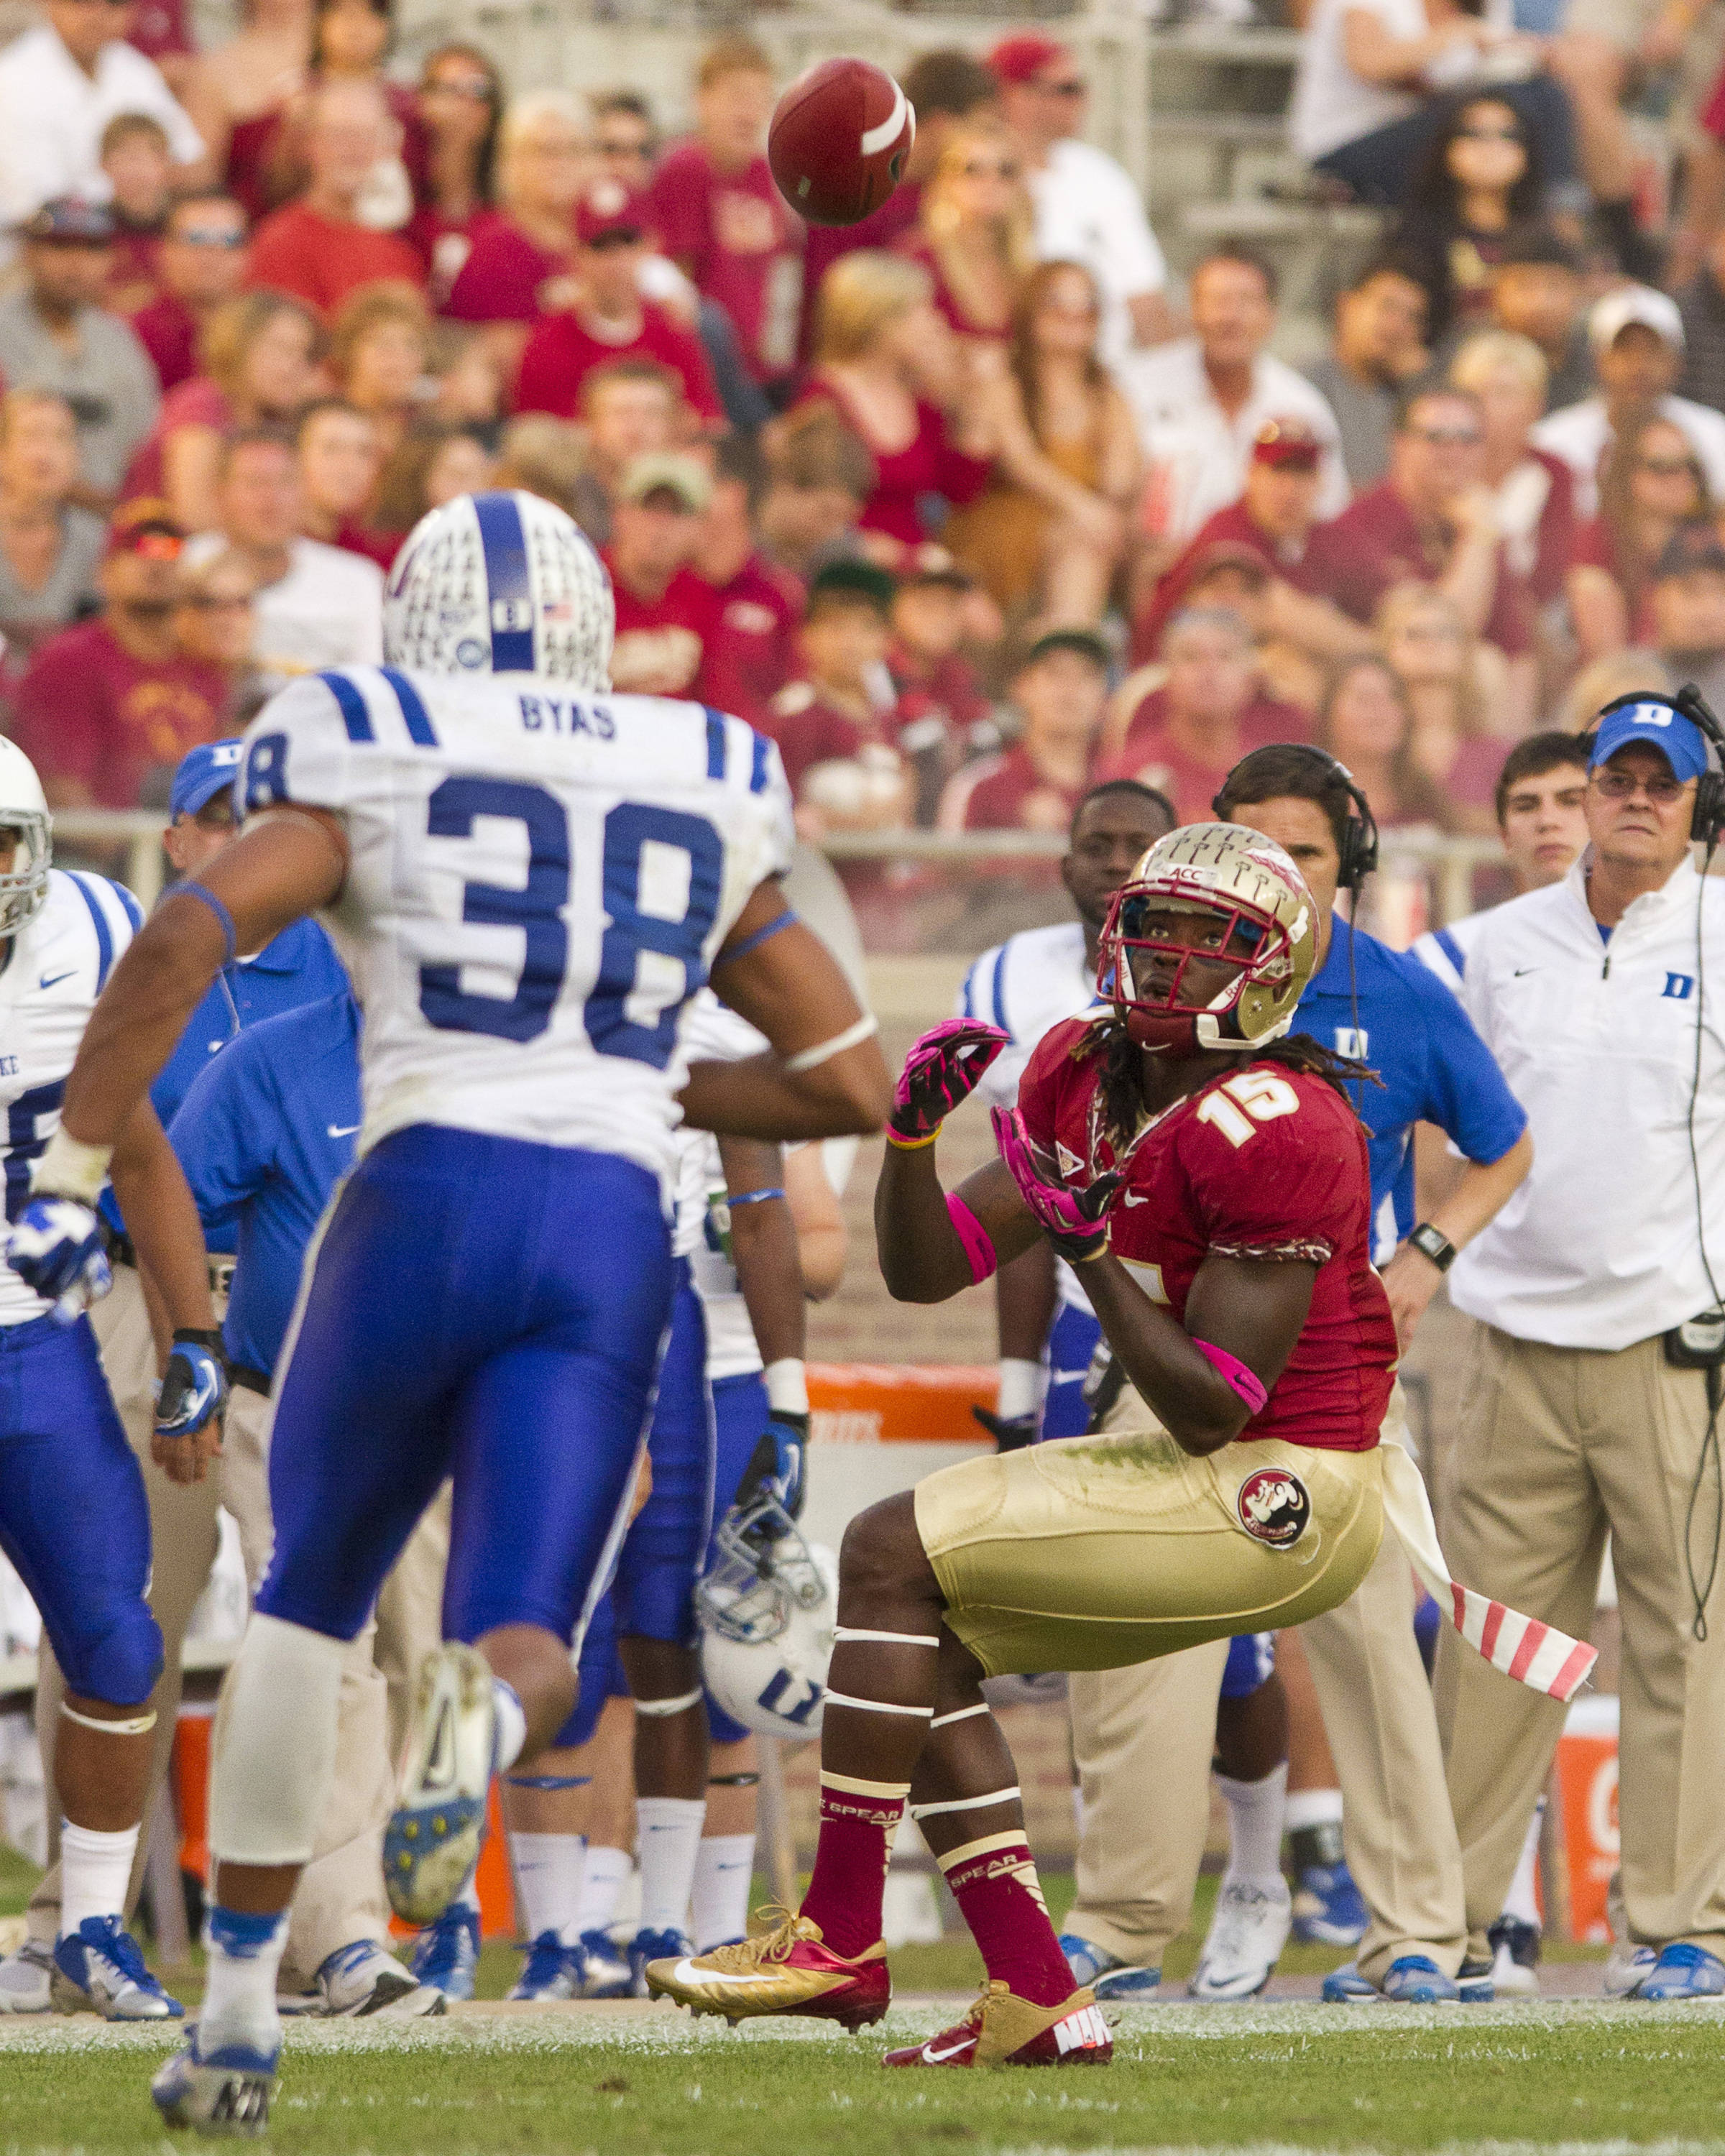 Greg Dent (15) makes a reception during FSU's 48-7 victory over Duke on October 27, 2012 in Tallahassee, Fla.